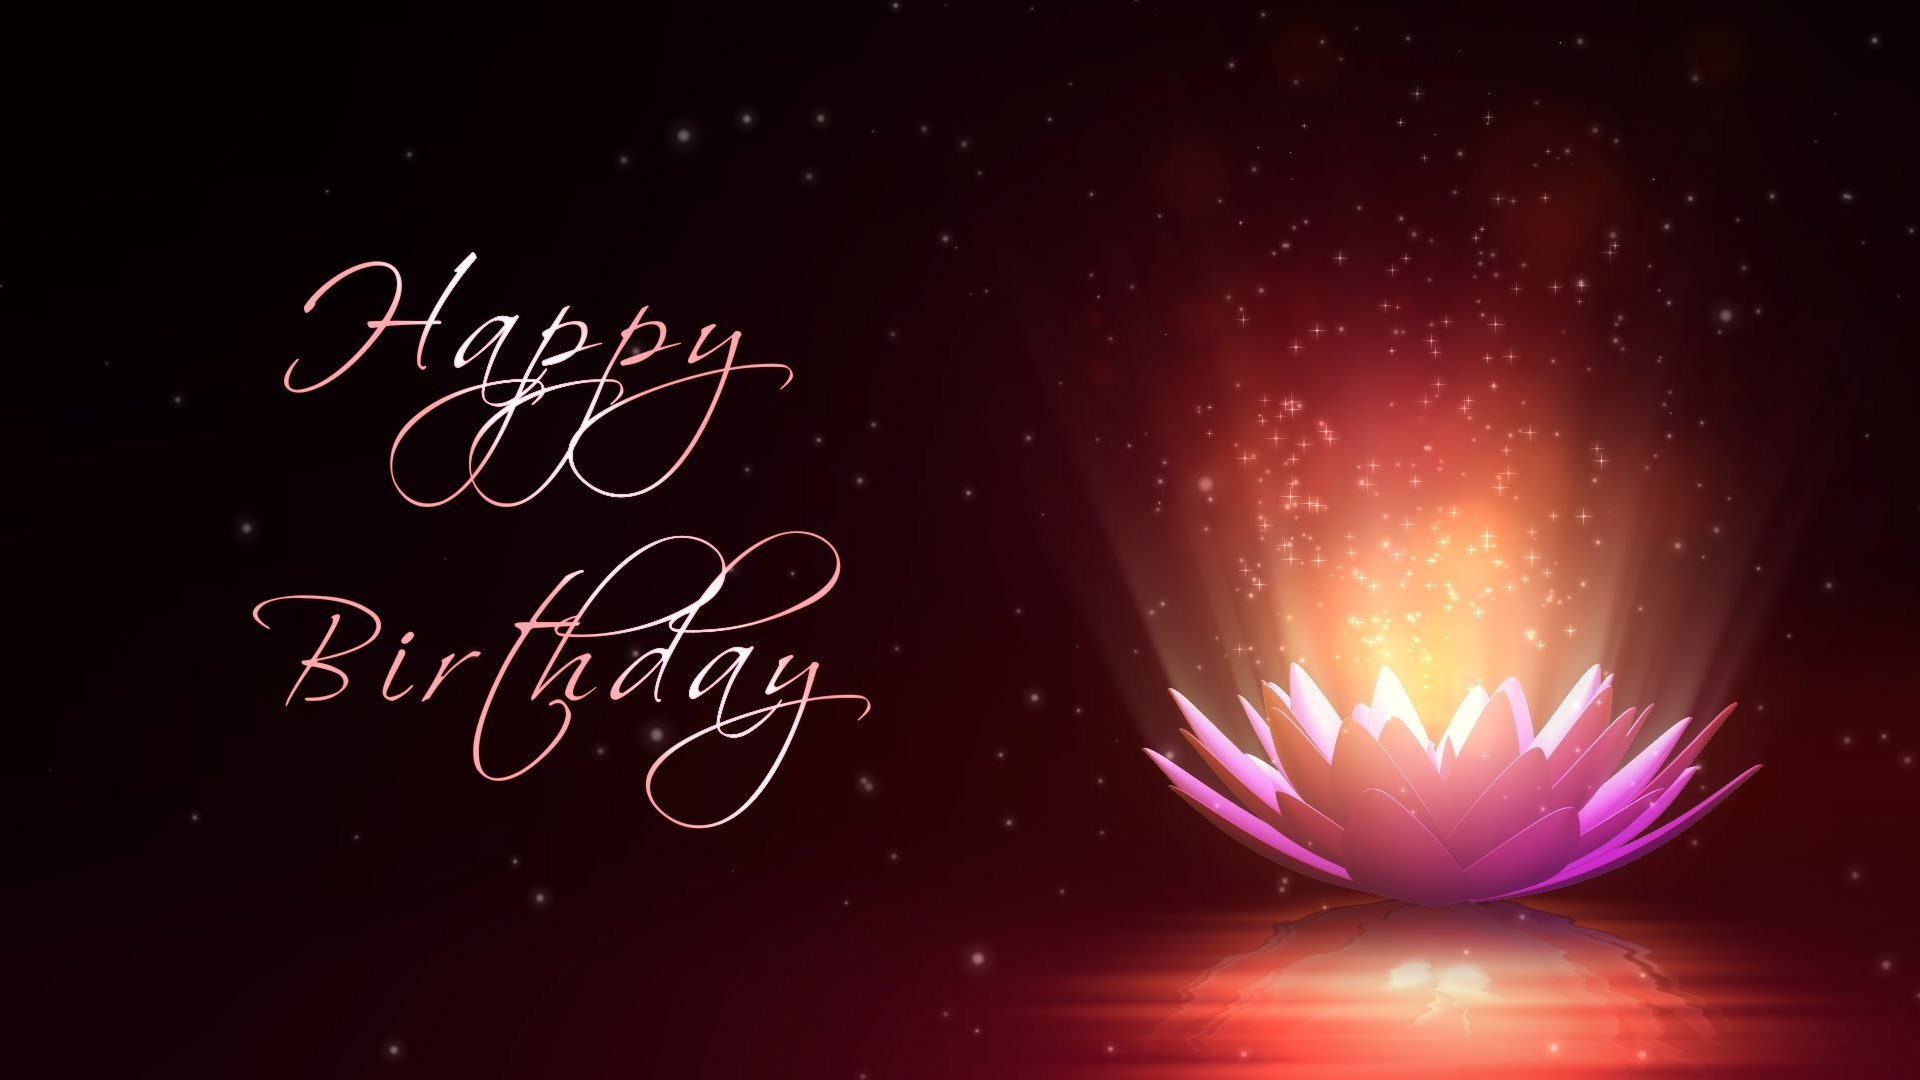 Birthday Background Images 183 ① Wallpapertag